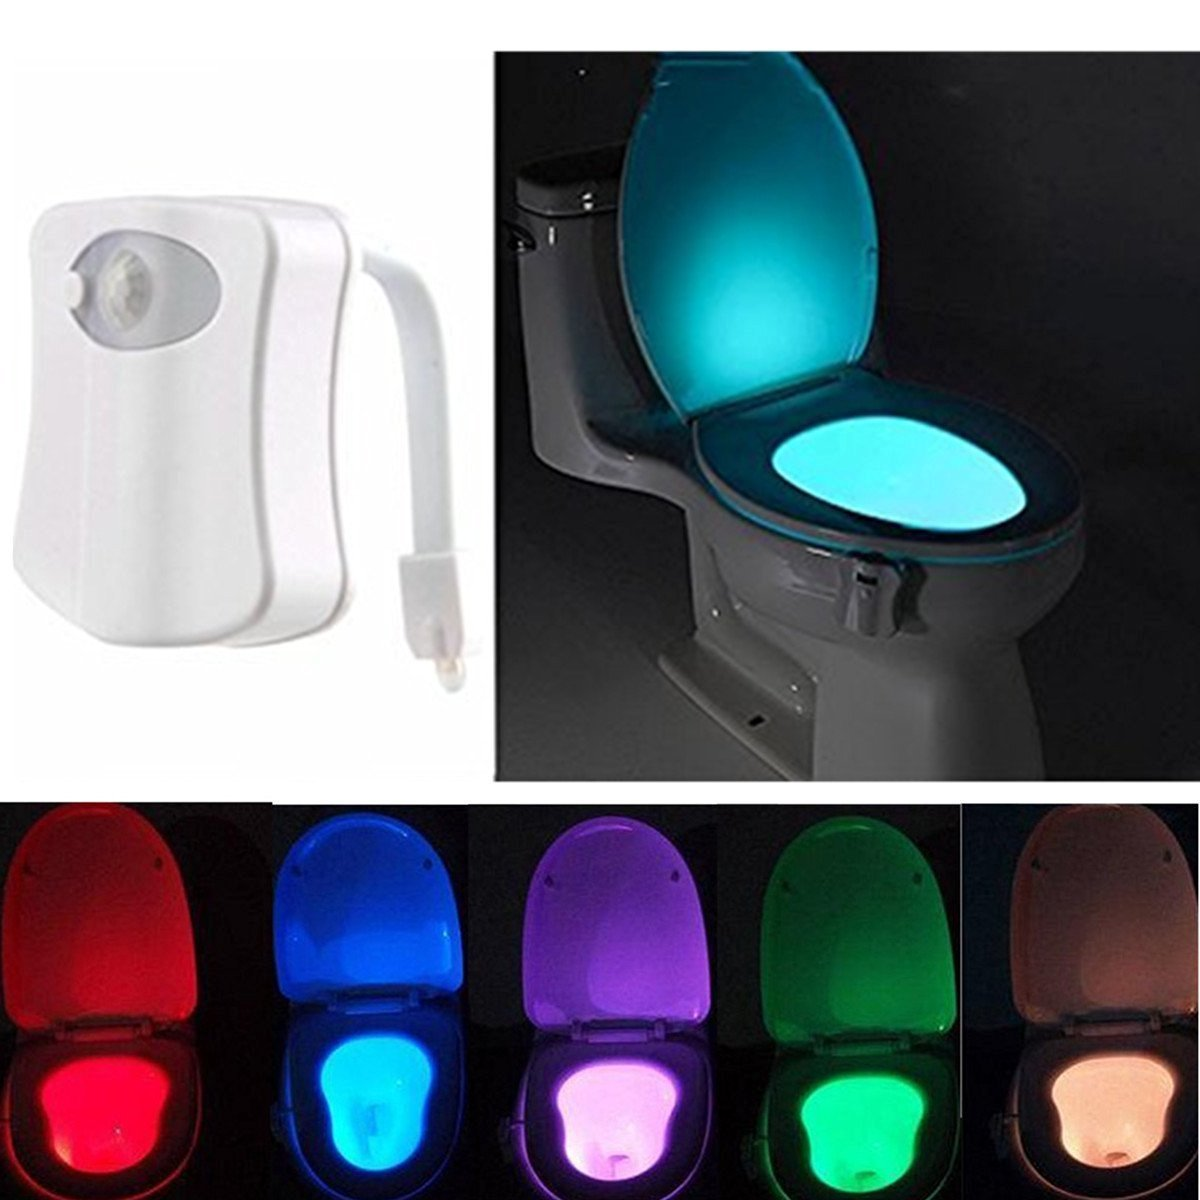 Motion Activated Toilet Night light 8 Colors Changing Toilet Bowl Light Battery Operated Toilet Seat Night light for Bathroom Kid Children Midnight Potty Training (Batteries Not Included) MECO